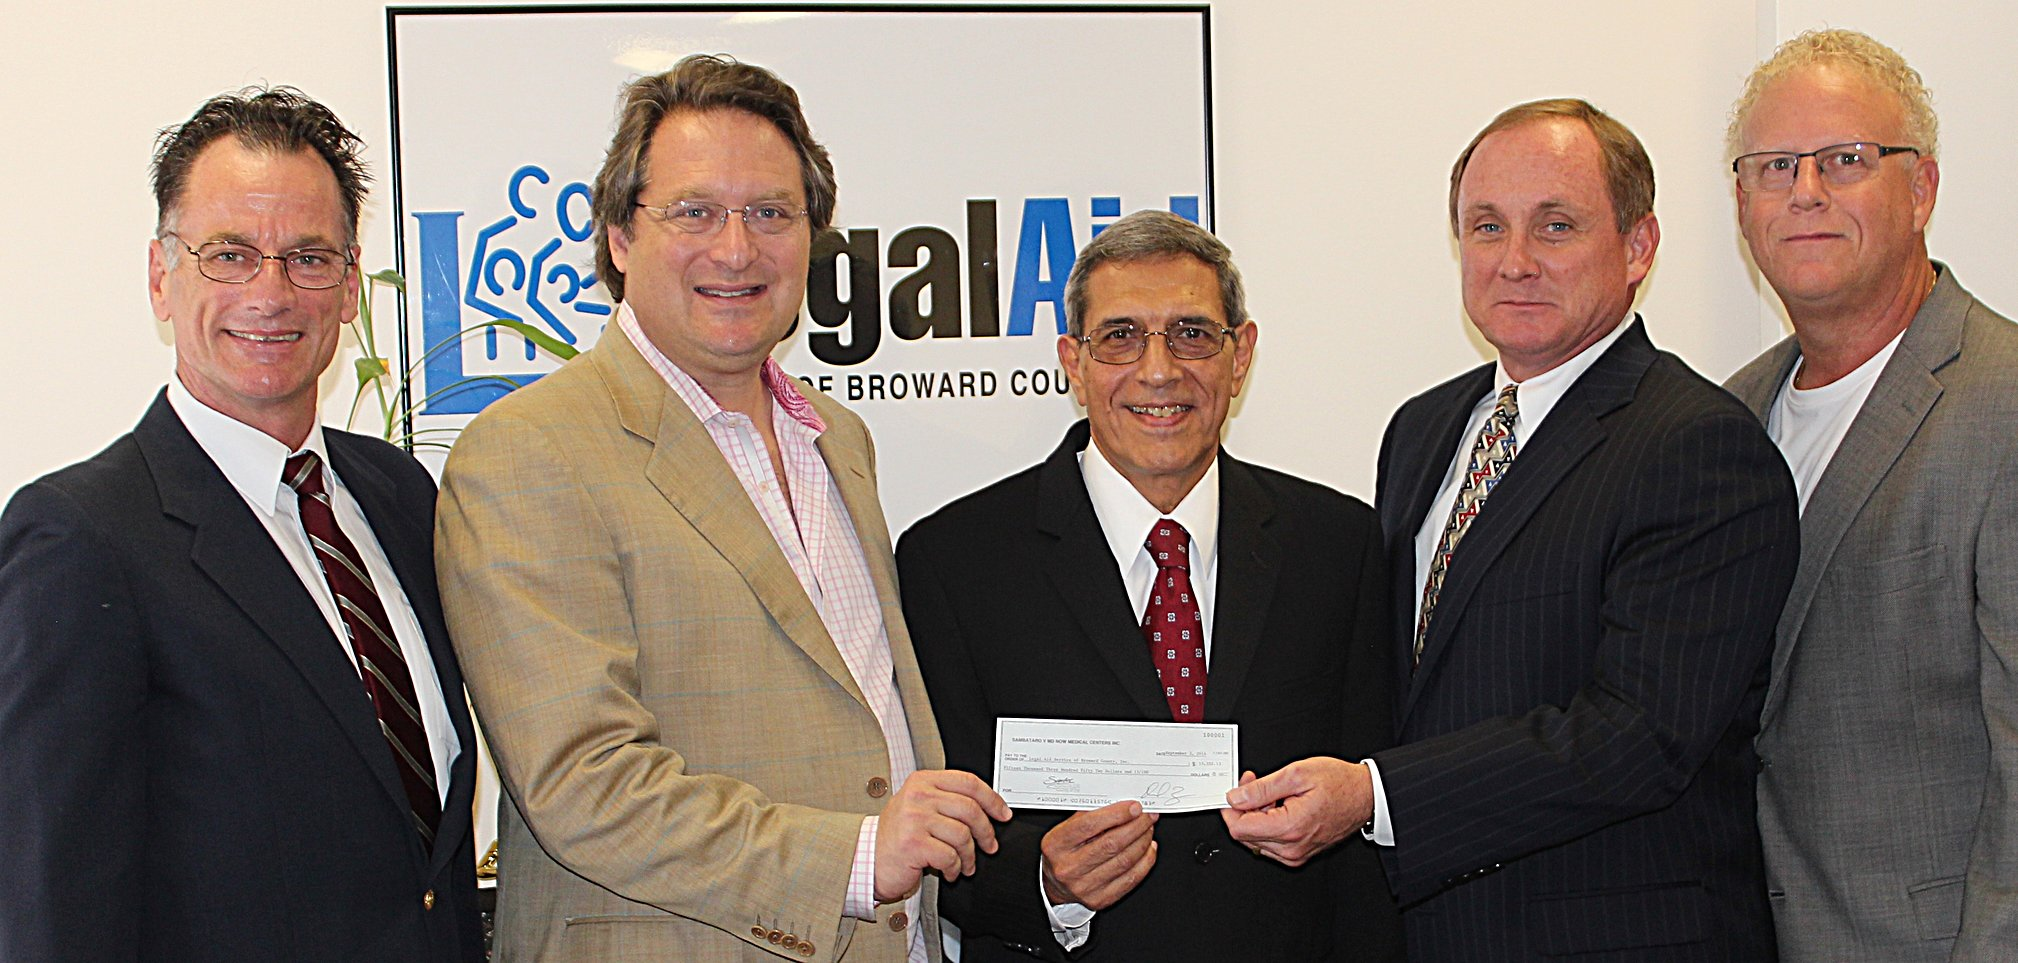 Zebersky Payne Shaw Lewenz, LLP Makes a Cy Pres Donation of the Sambataro Class Action Funds to Legal Aid Service of Broward County